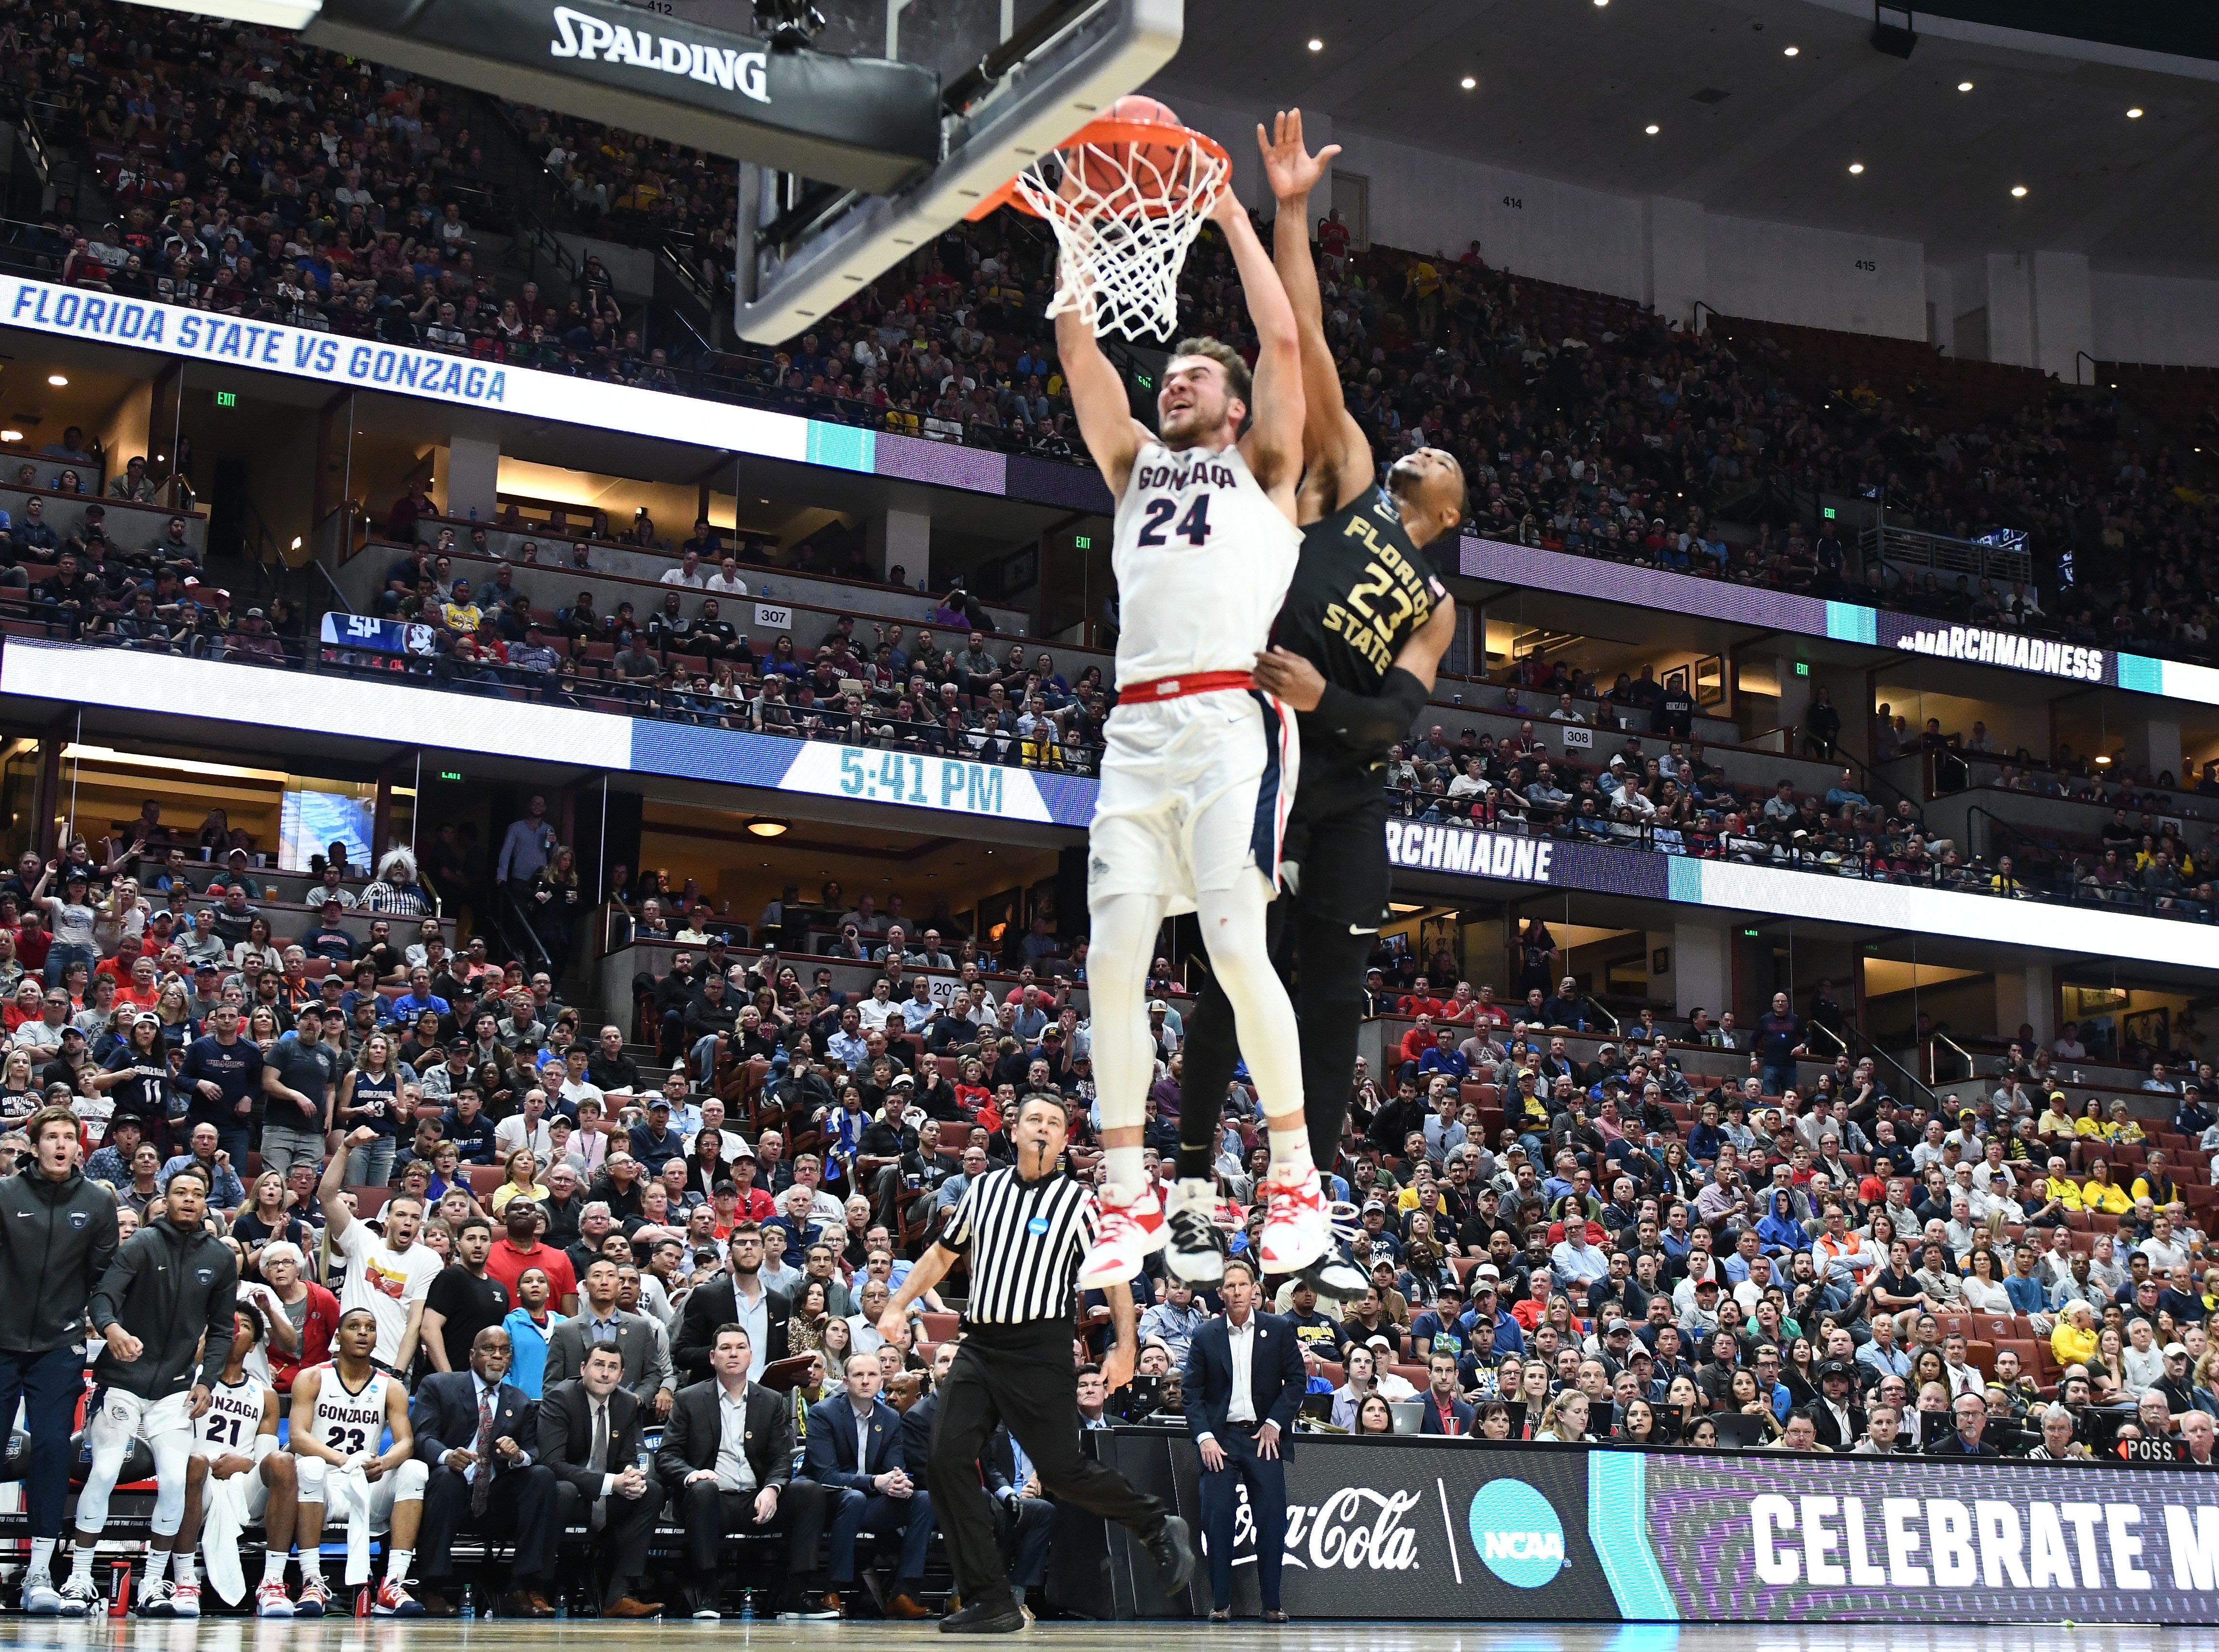 March 28, 2019; Anaheim, CA, USA; Gonzaga Bulldogs forward Corey Kispert (24) scores a basket ahead of Florida State Seminoles guard M.J. Walker (23) during the second half in the semifinals of the west regional of the 2019 NCAA Tournament at Honda Center. Mandatory Credit: Robert Hanashiro-USA TODAY Sports